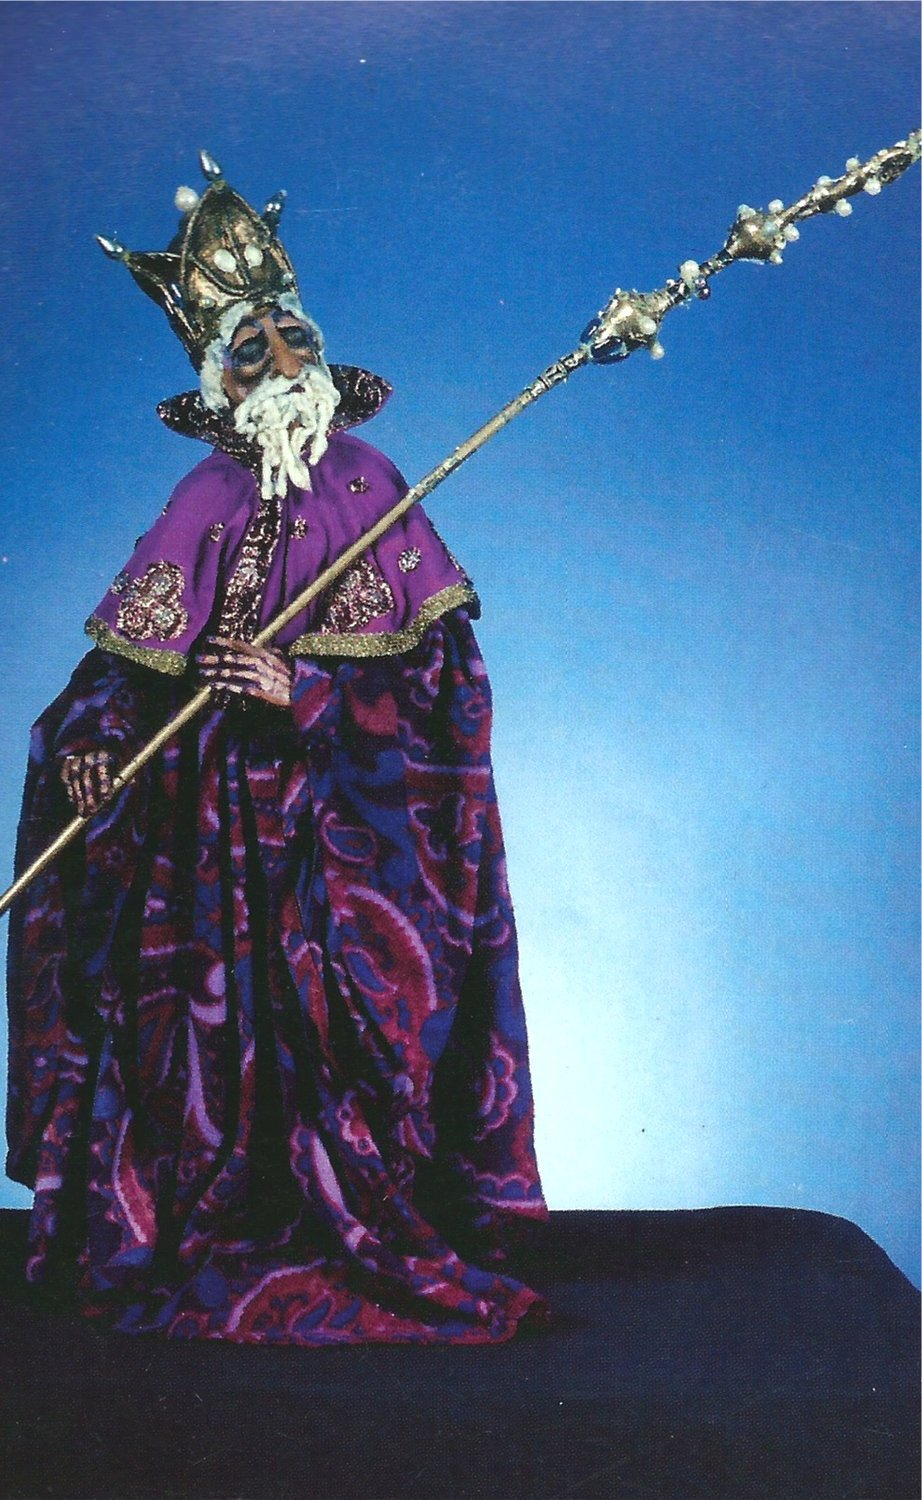 Imam, from <em><em>Ki</em>smet</em> (1975), design and direction: Frank Ballard for production at the University of Connecticut. Rod puppet. Photo courtesy of Ballard Institute and Museum of Puppetry at the University of Connecticut. Photo: Thomas A. Hoebbel